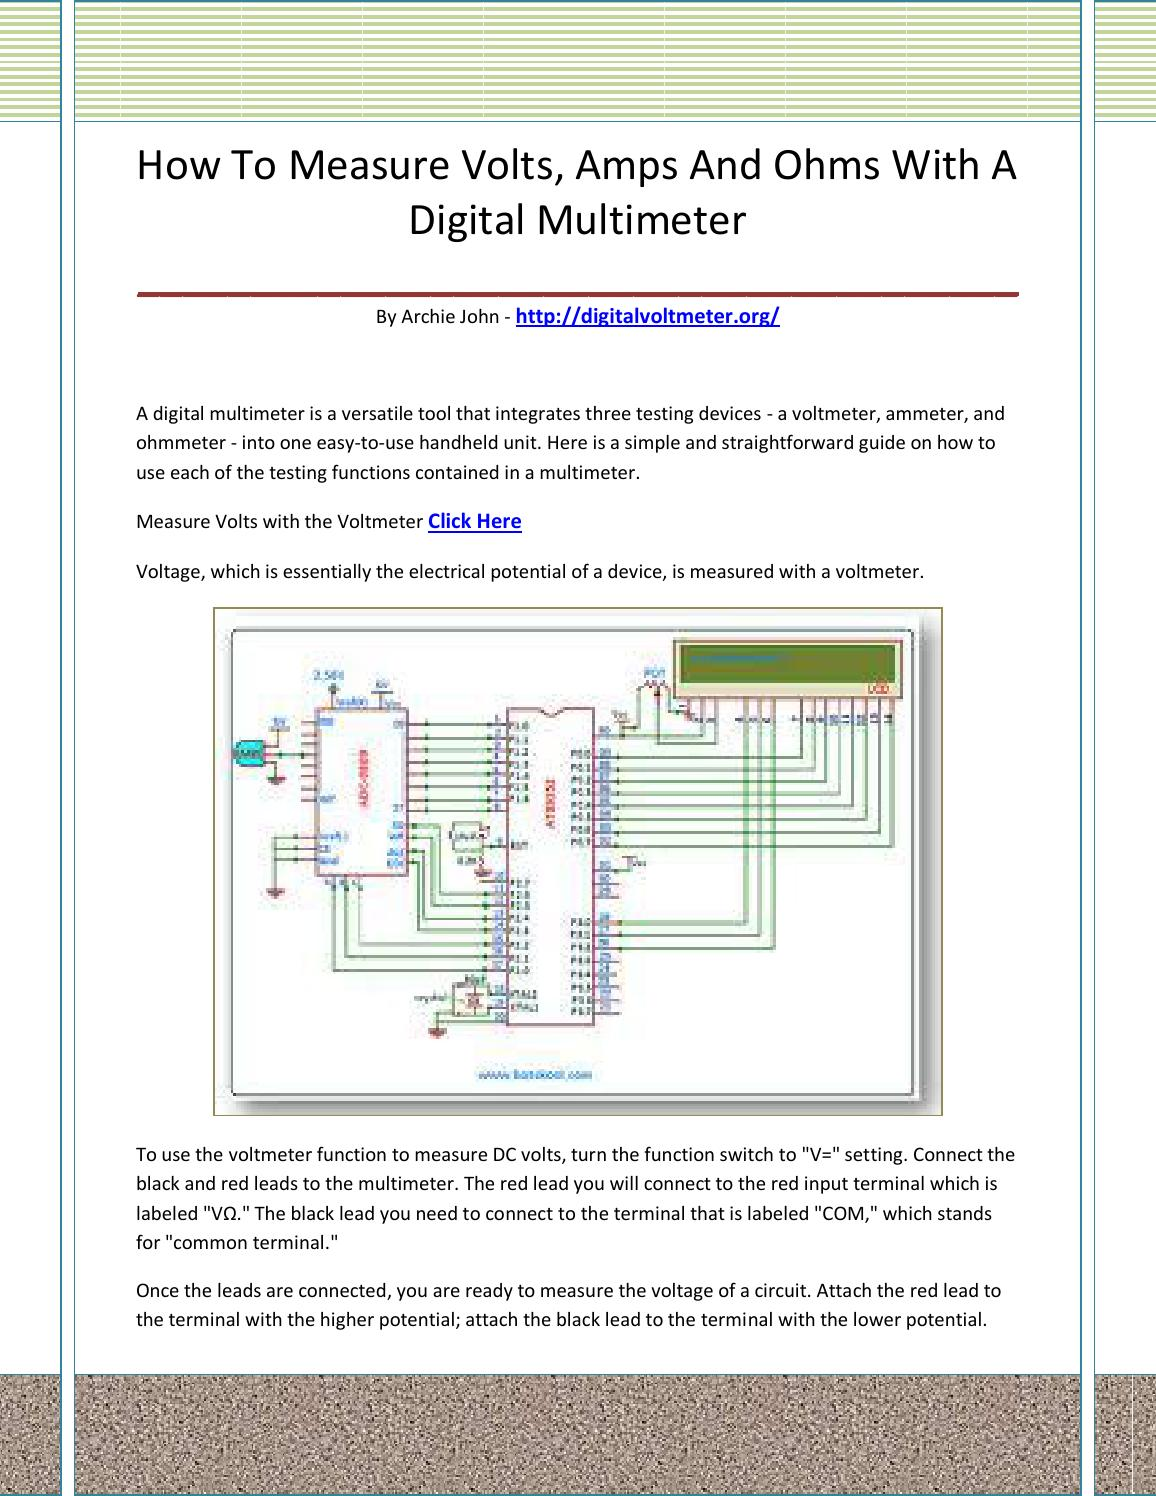 Digital Voltmeter By Adfasaskllll Issuu Diagram Of A Simple Series Circuit With An Ammeter And